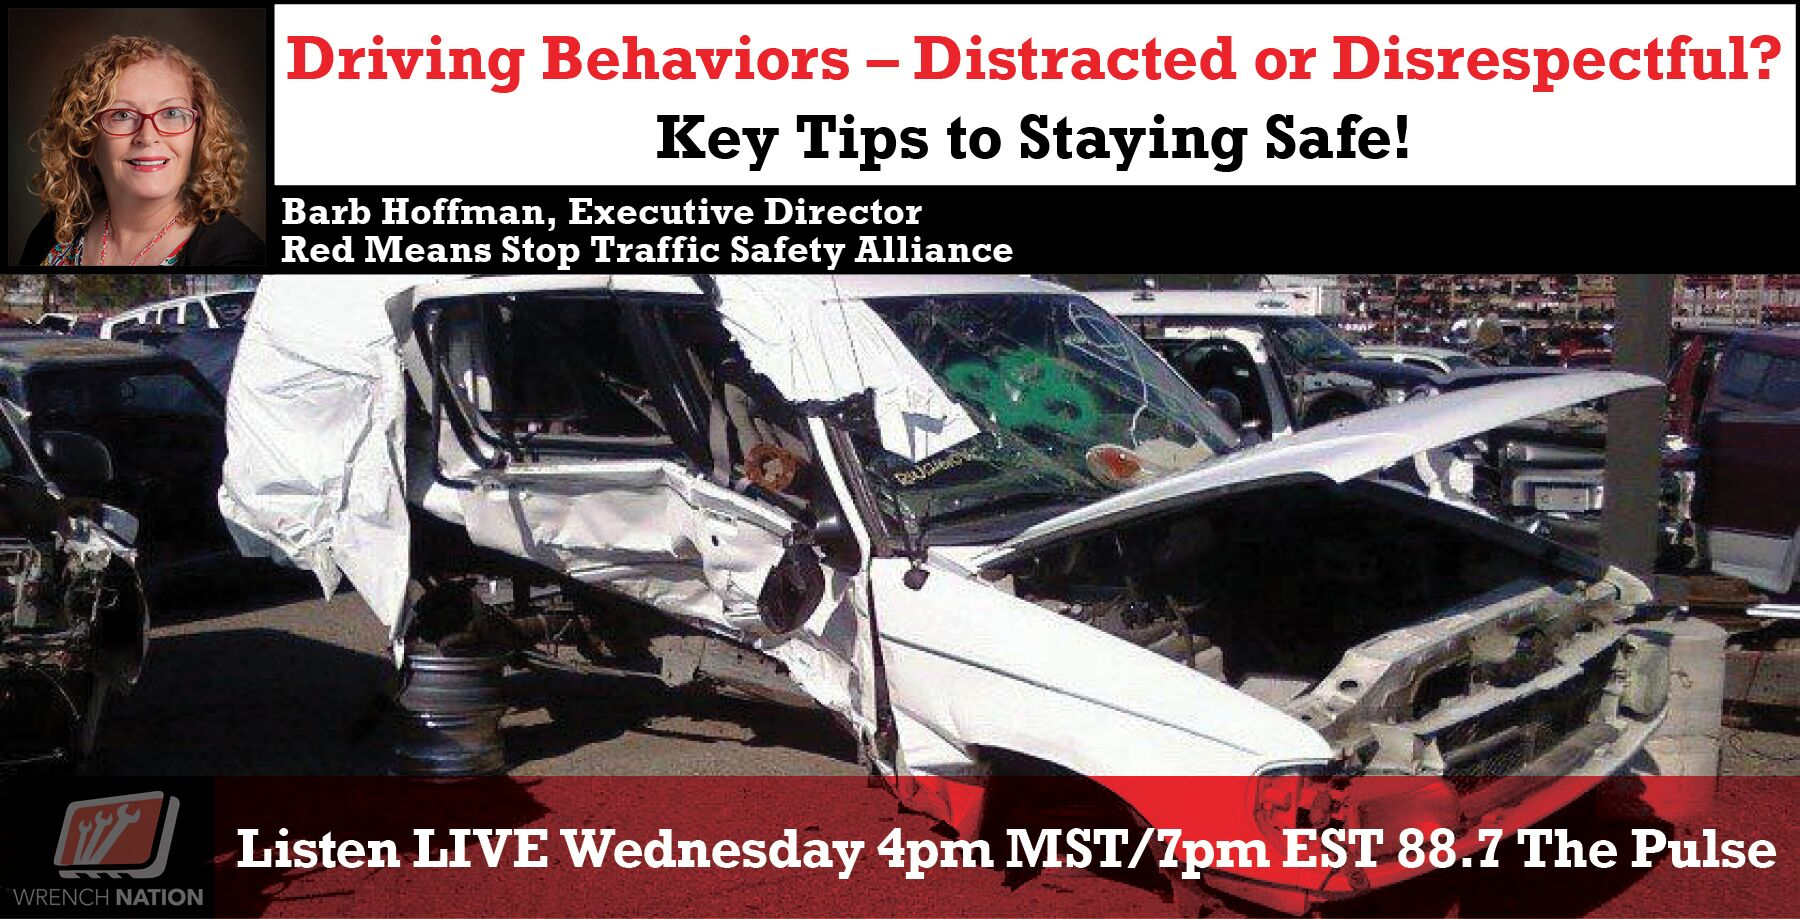 #163 Those Ridiculous Driving Habits That Drive You Crazy